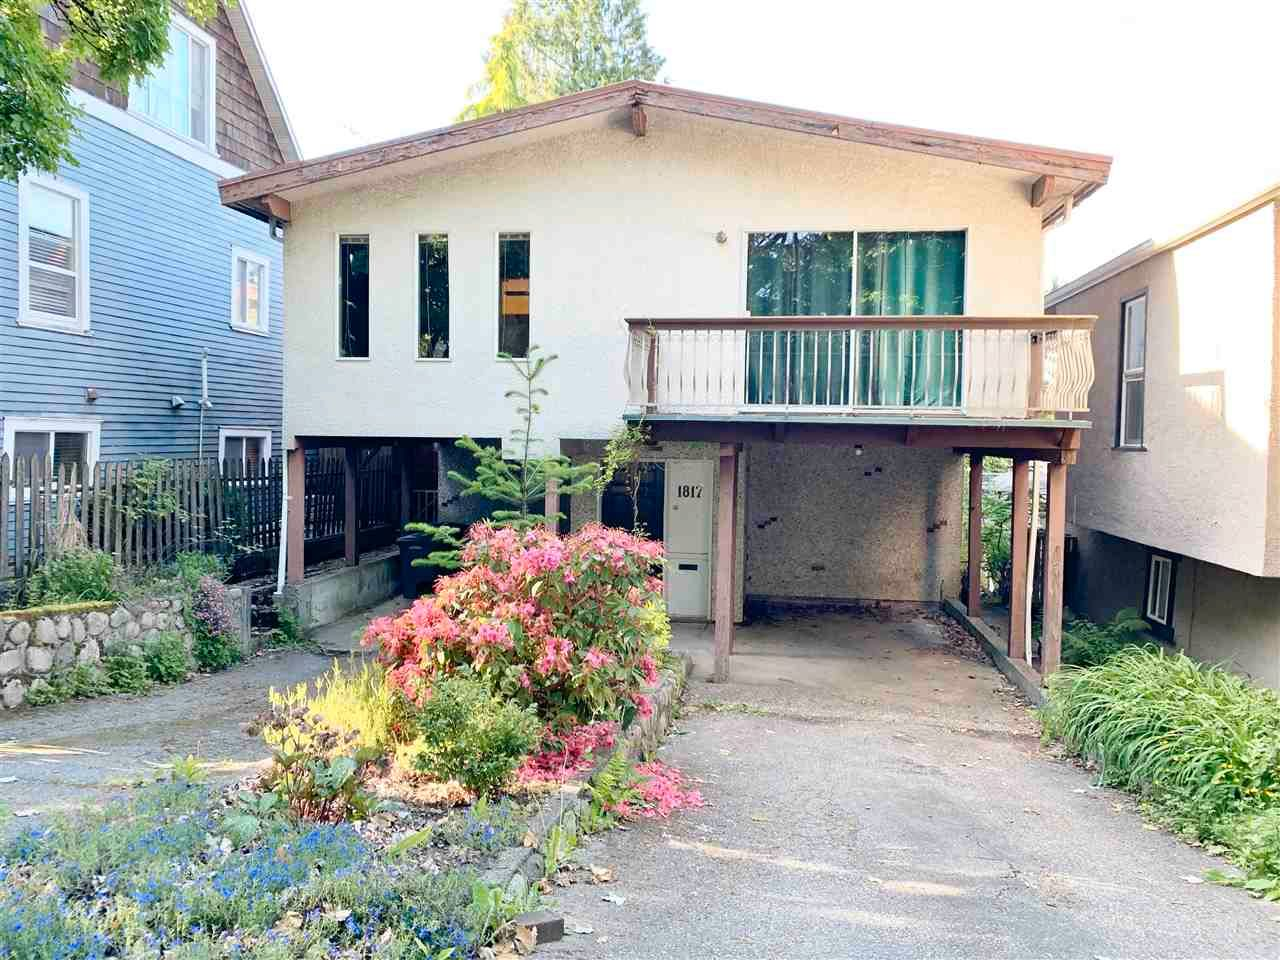 Main Photo: 1817 E 35TH Avenue in Vancouver: Victoria VE House for sale (Vancouver East)  : MLS®# R2588683